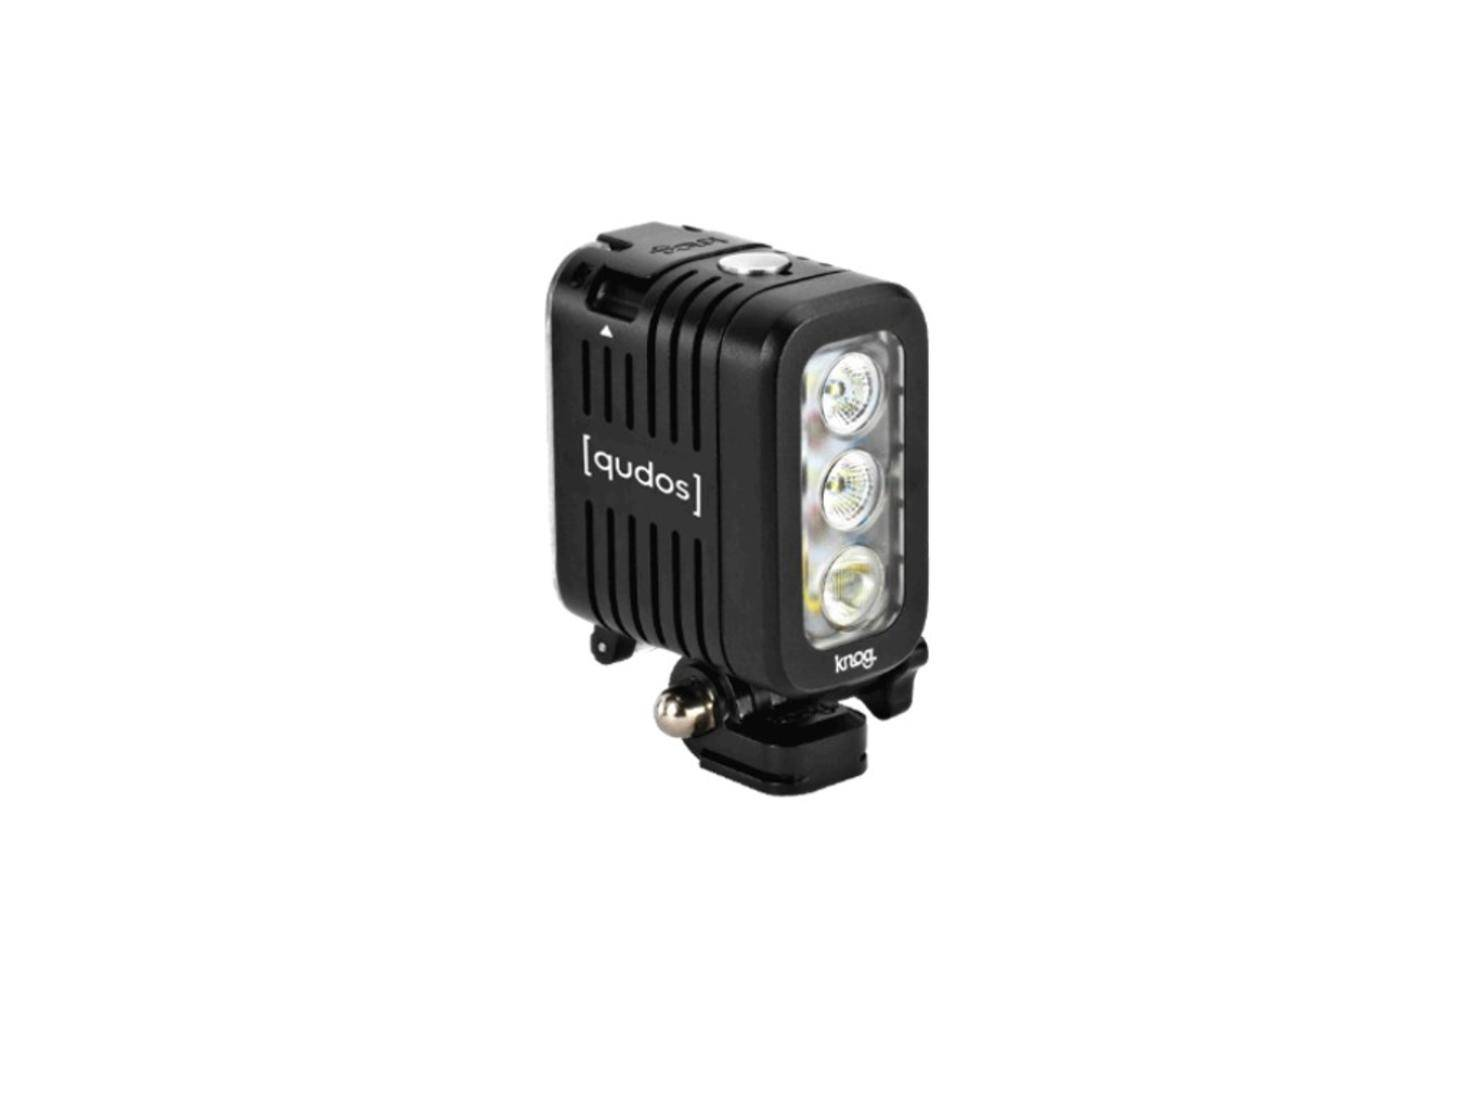 Knog Qudos Action Light